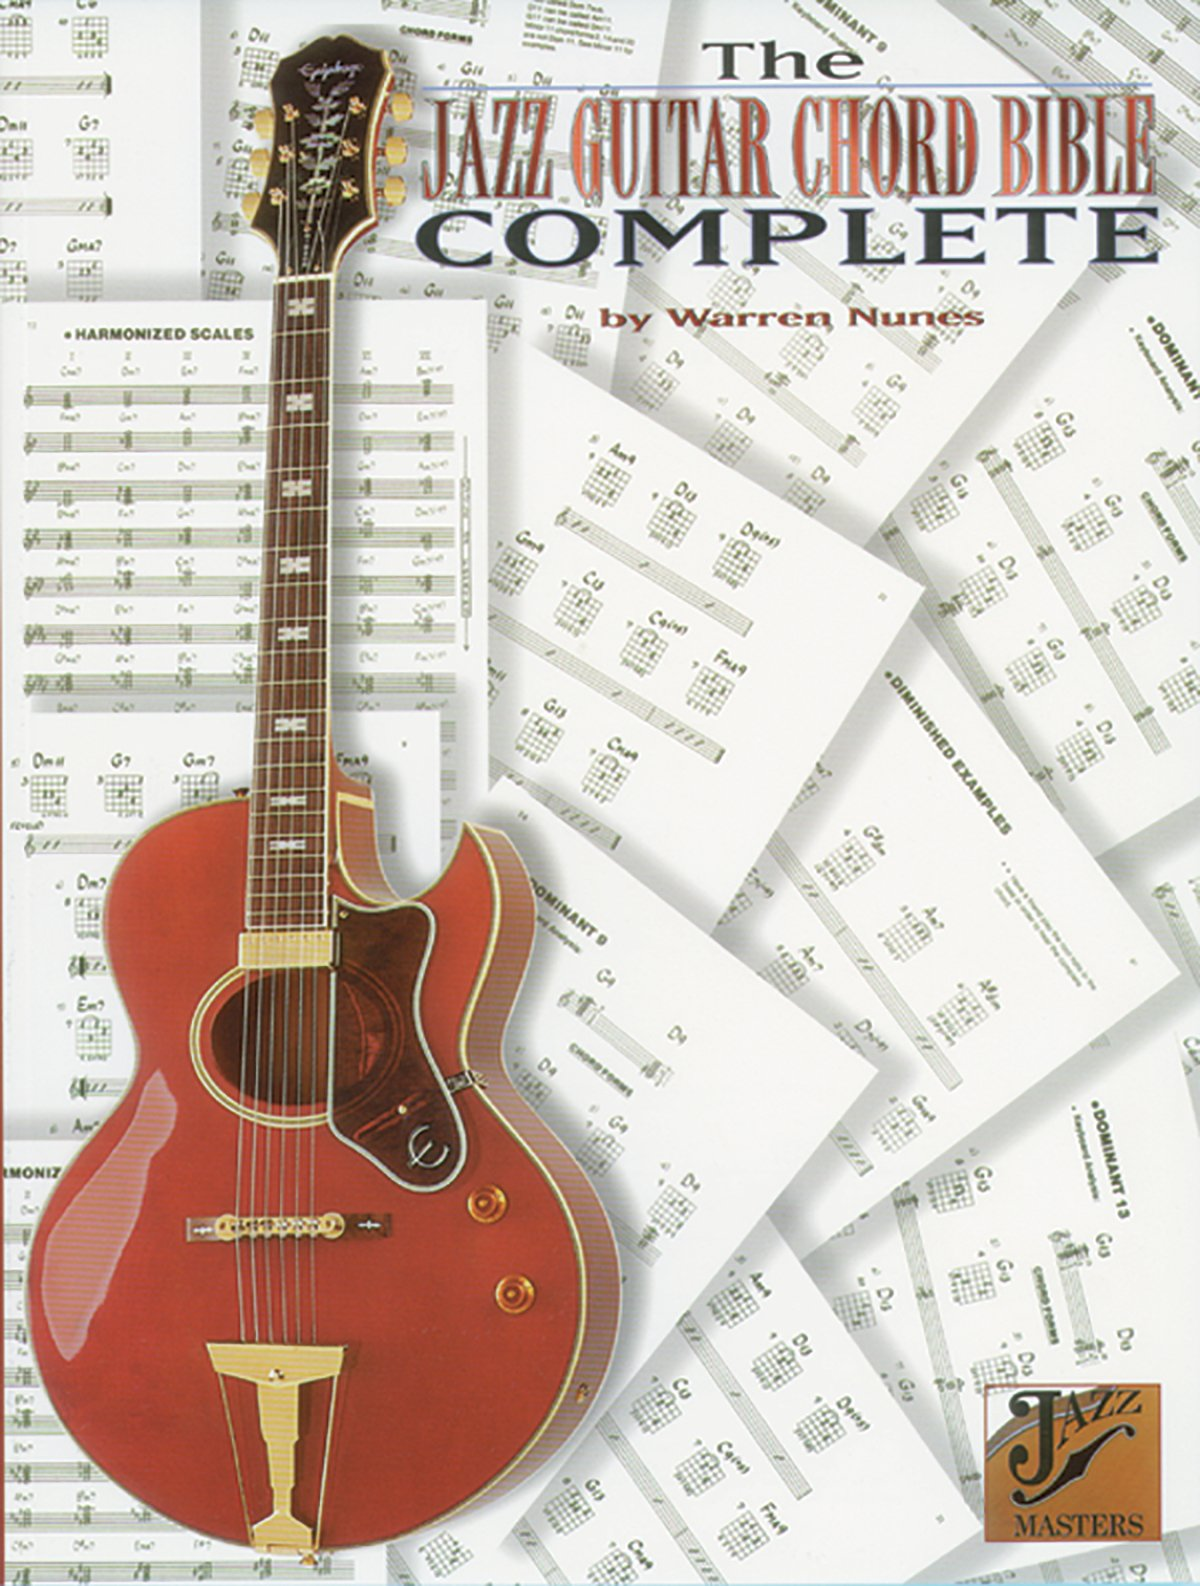 The Jazz Guitar Chord Bible Complete Warren Nunes 9780769279725